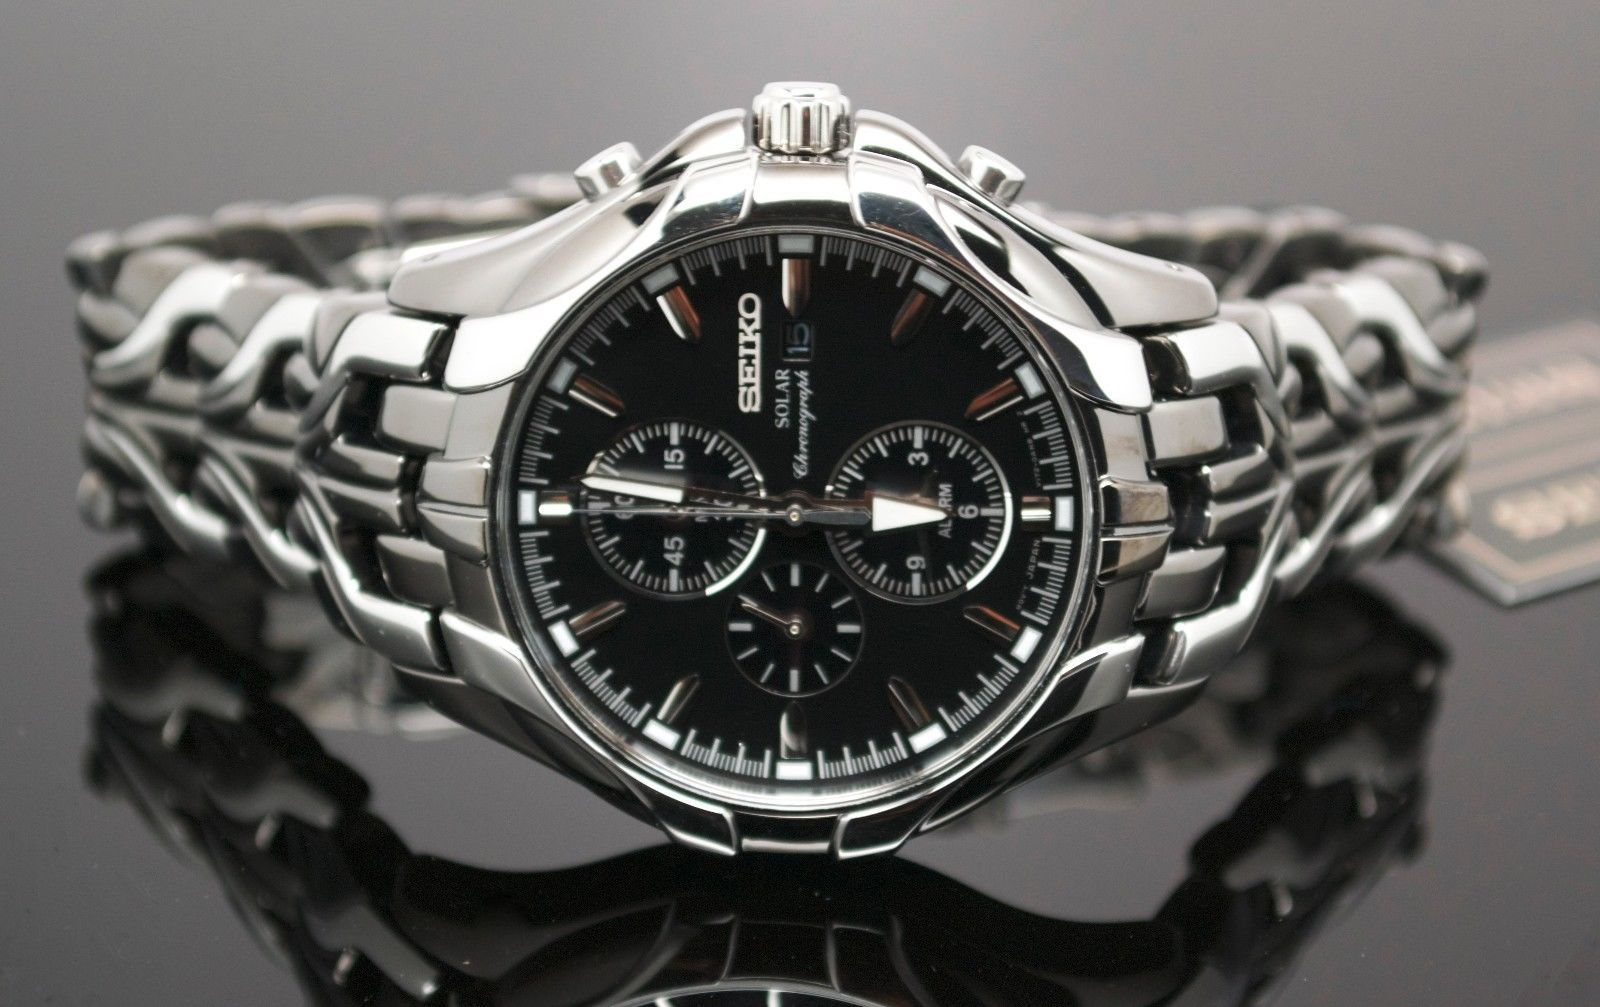 Seiko SSC139 Excelsior Gunmetal Watch Review